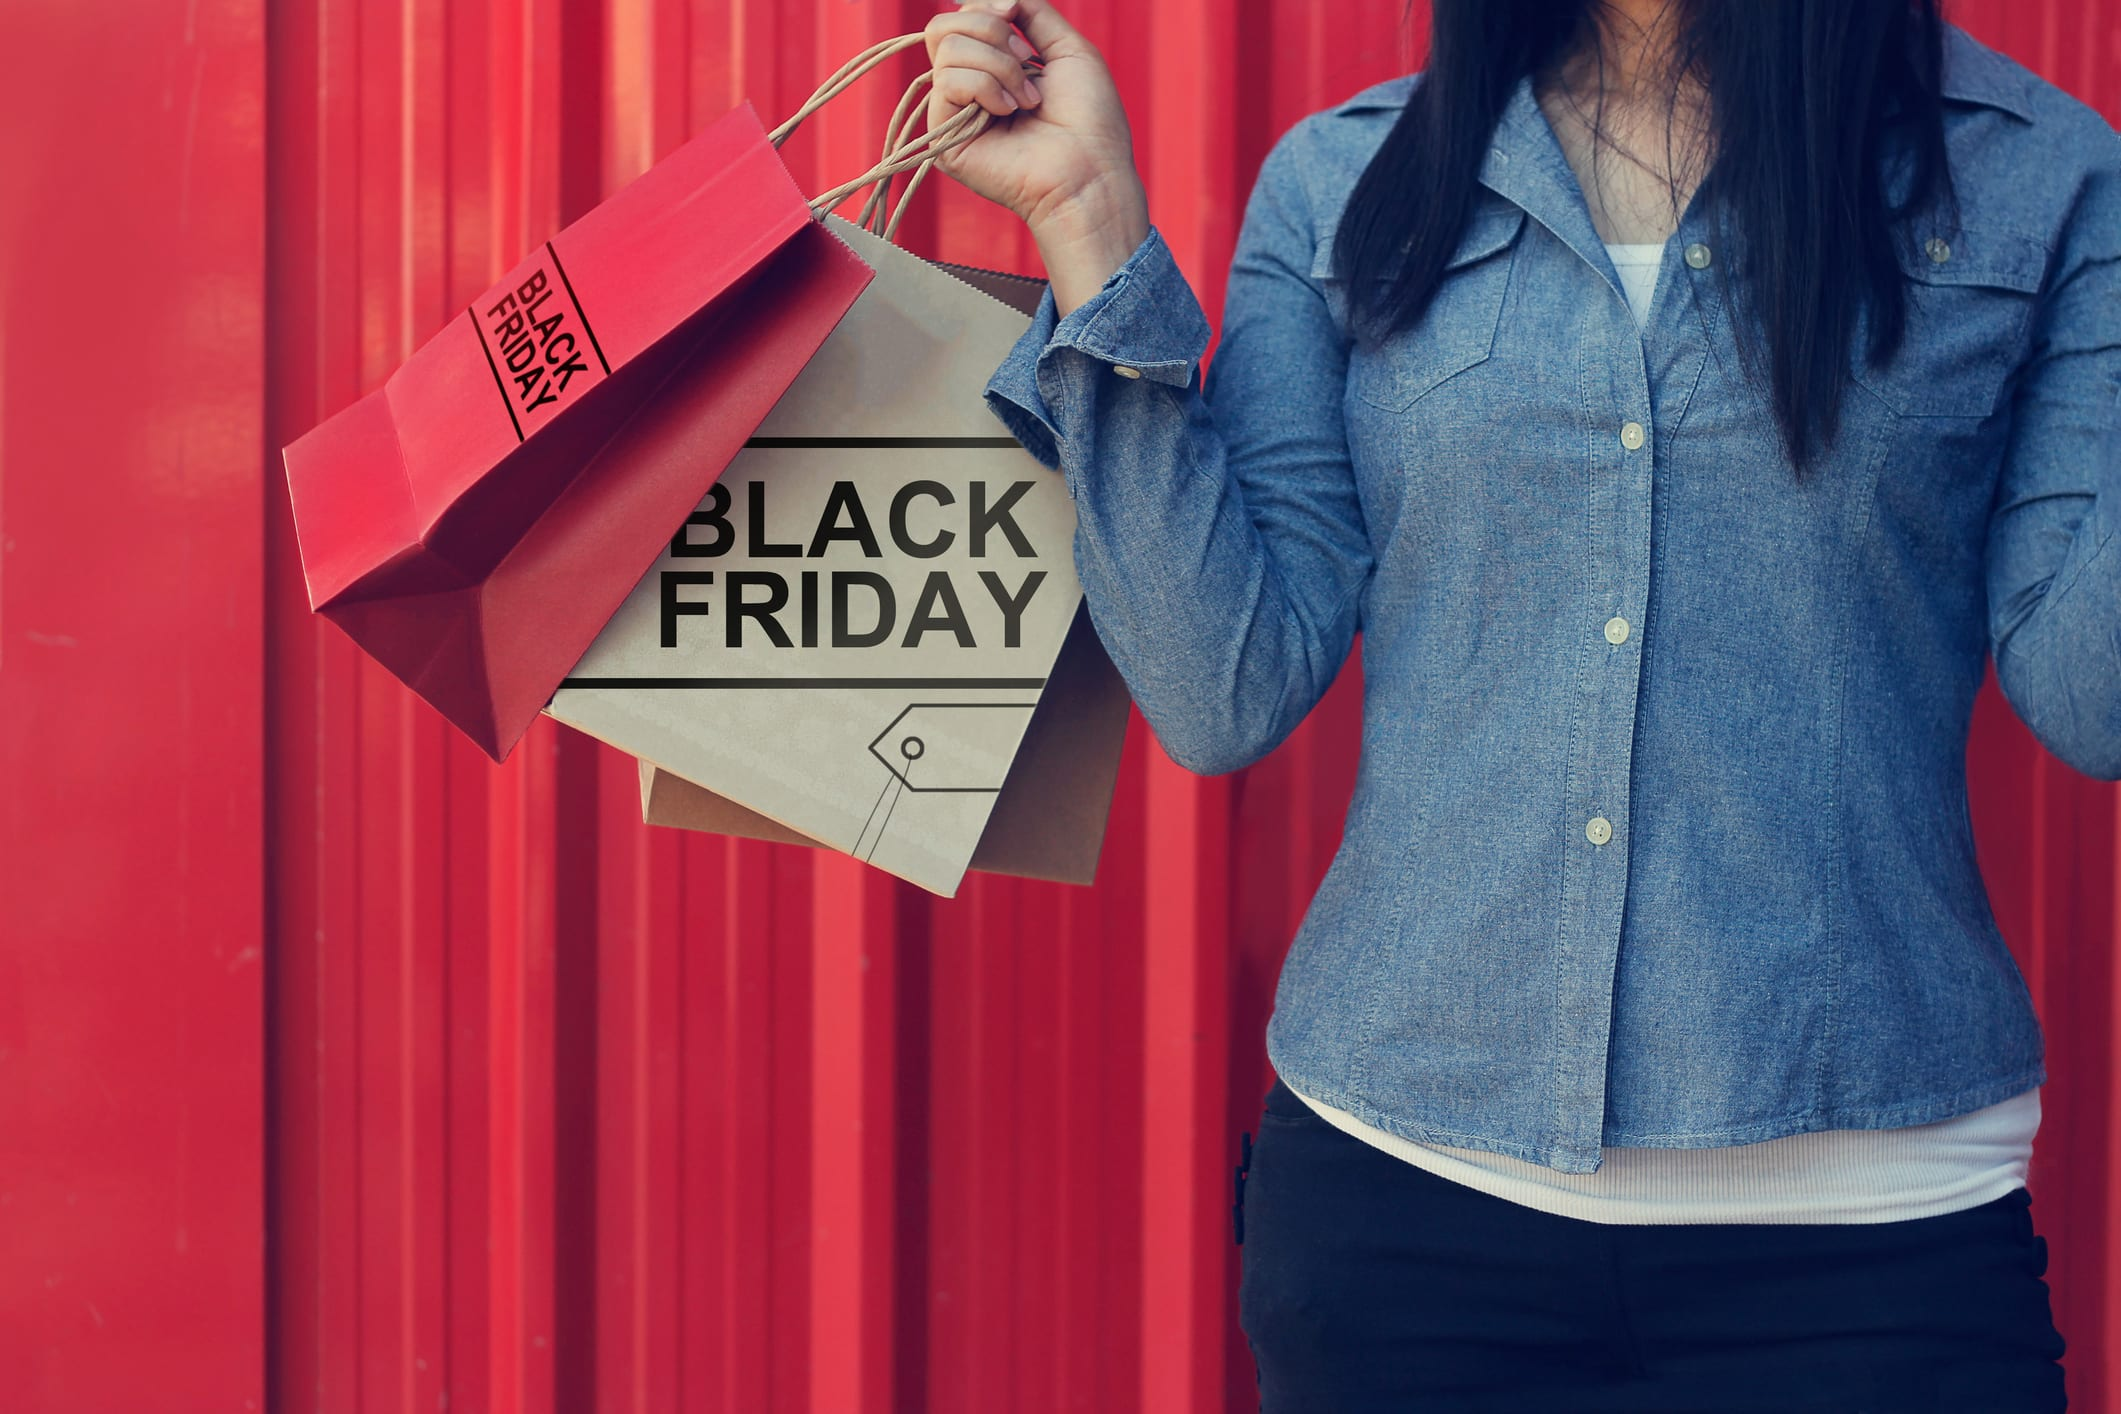 Black Friday bags